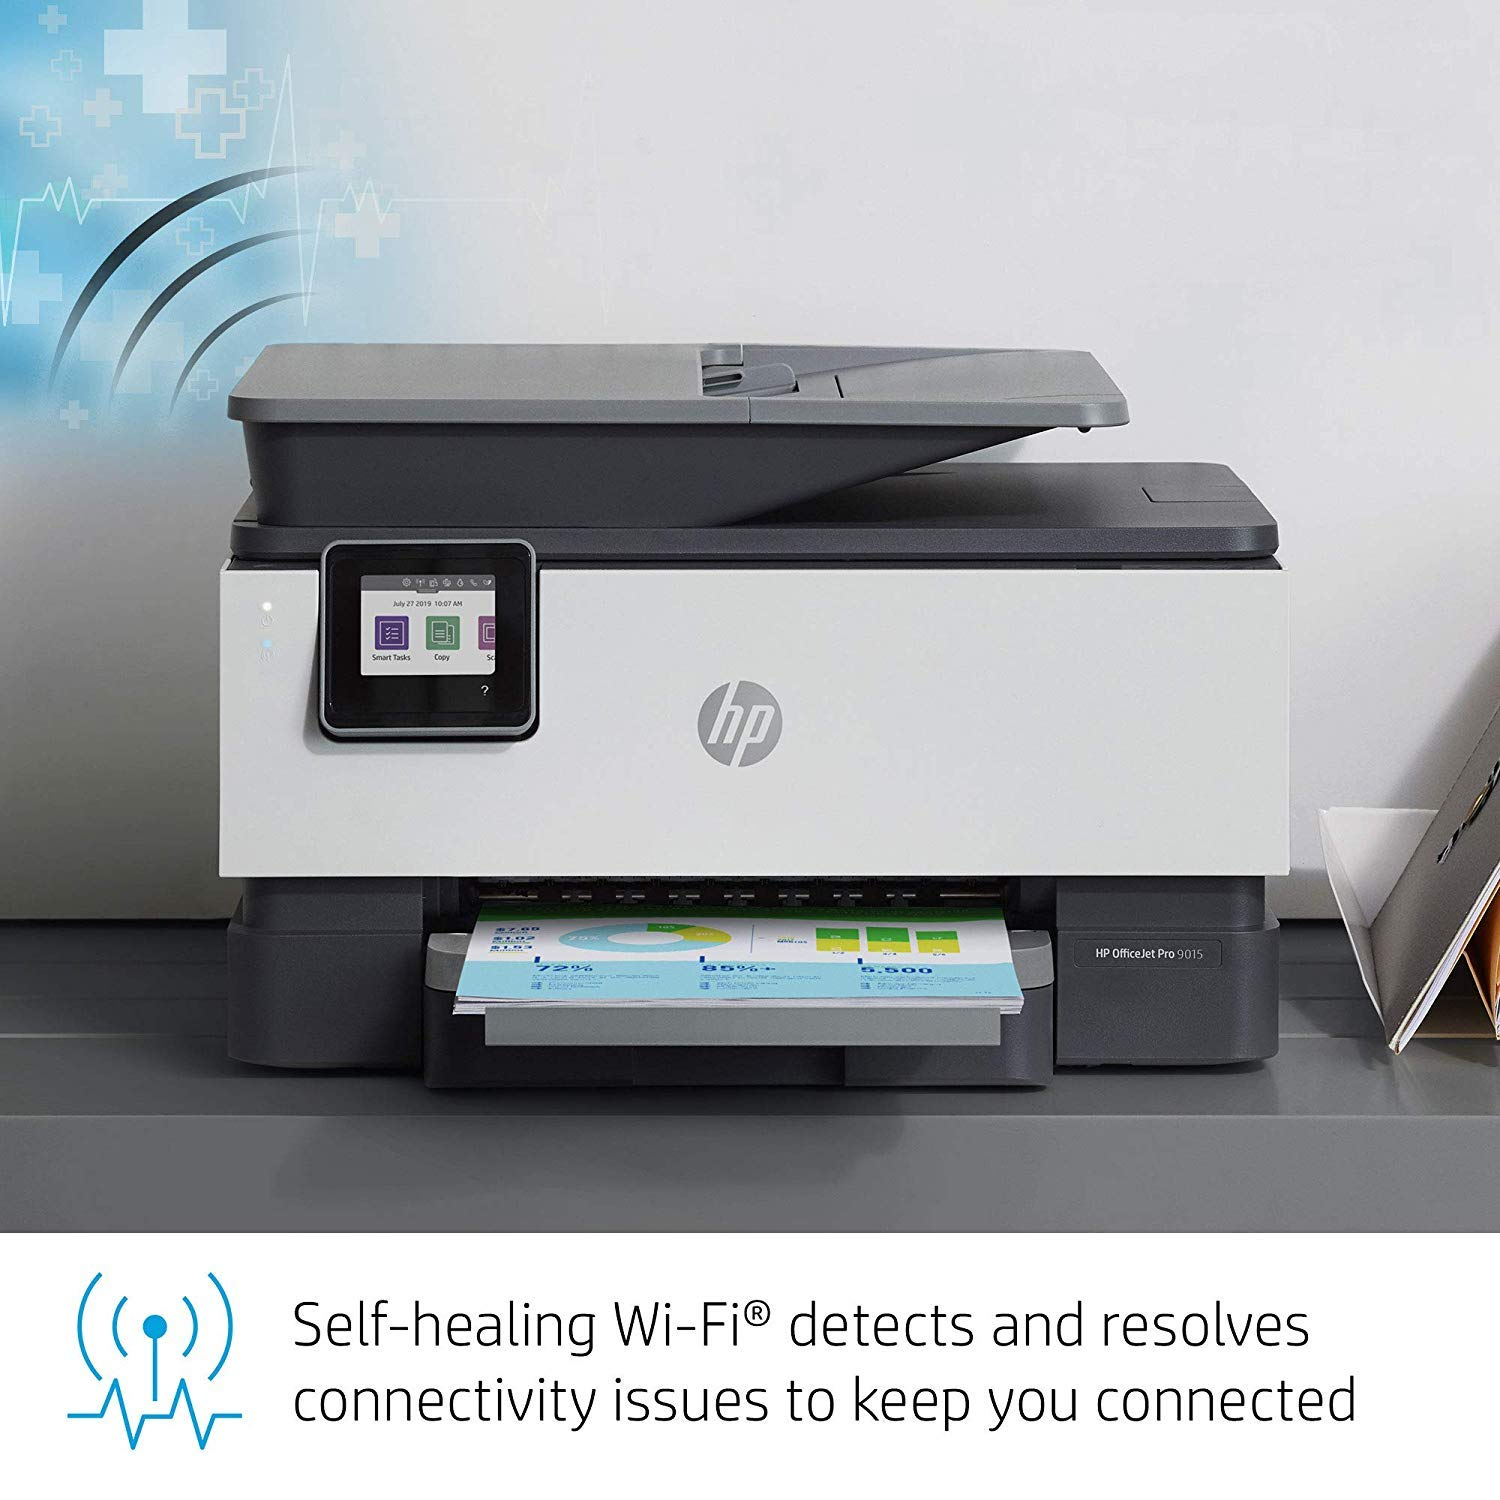 HP OfficeJet Pro 9015 All-in-One Wireless Printer, with Smart Tasks for Smart Office Productivity & Never Run Out of Ink with HP Instant Ink (1KR42A) by HP (Image #5)